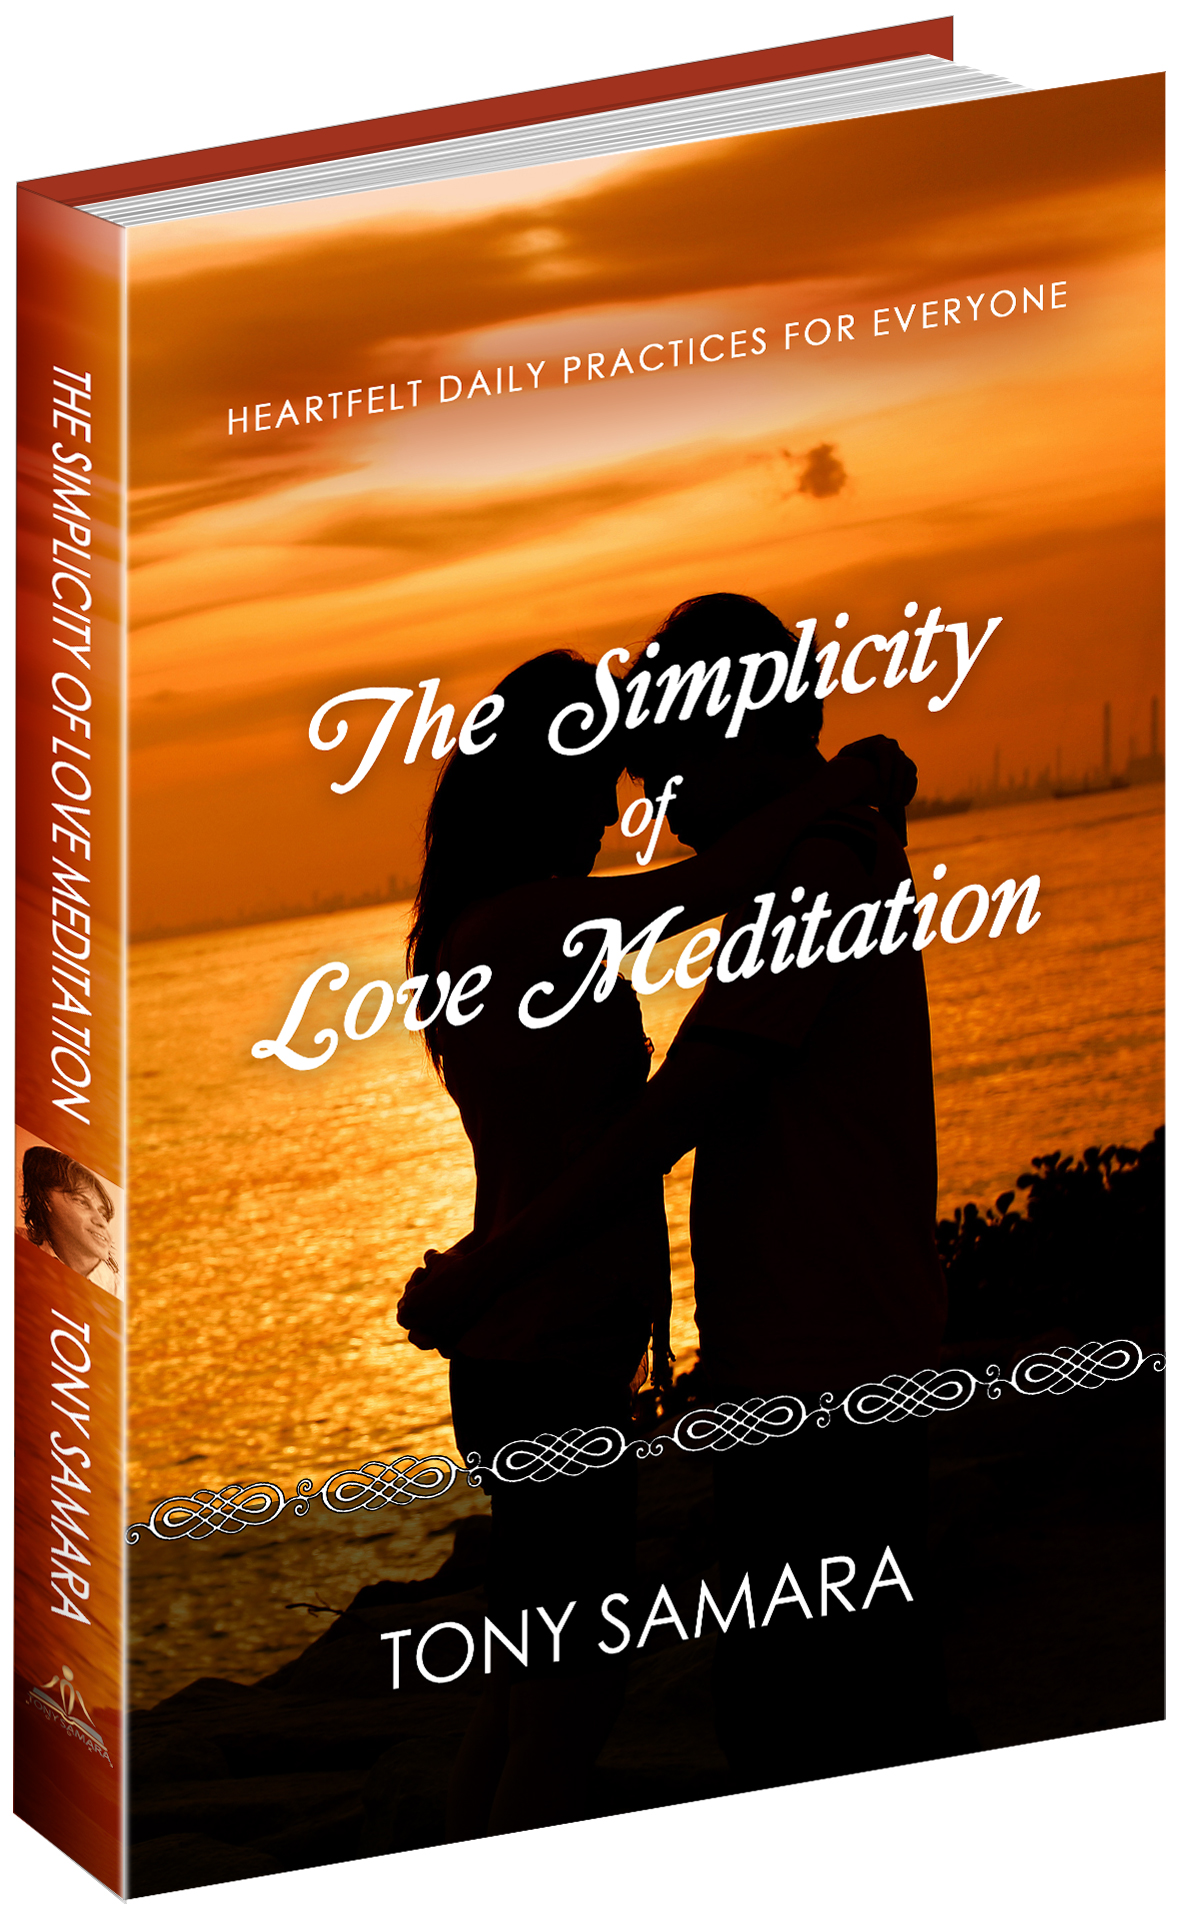 The-Simplicity-of-Love-Meditation